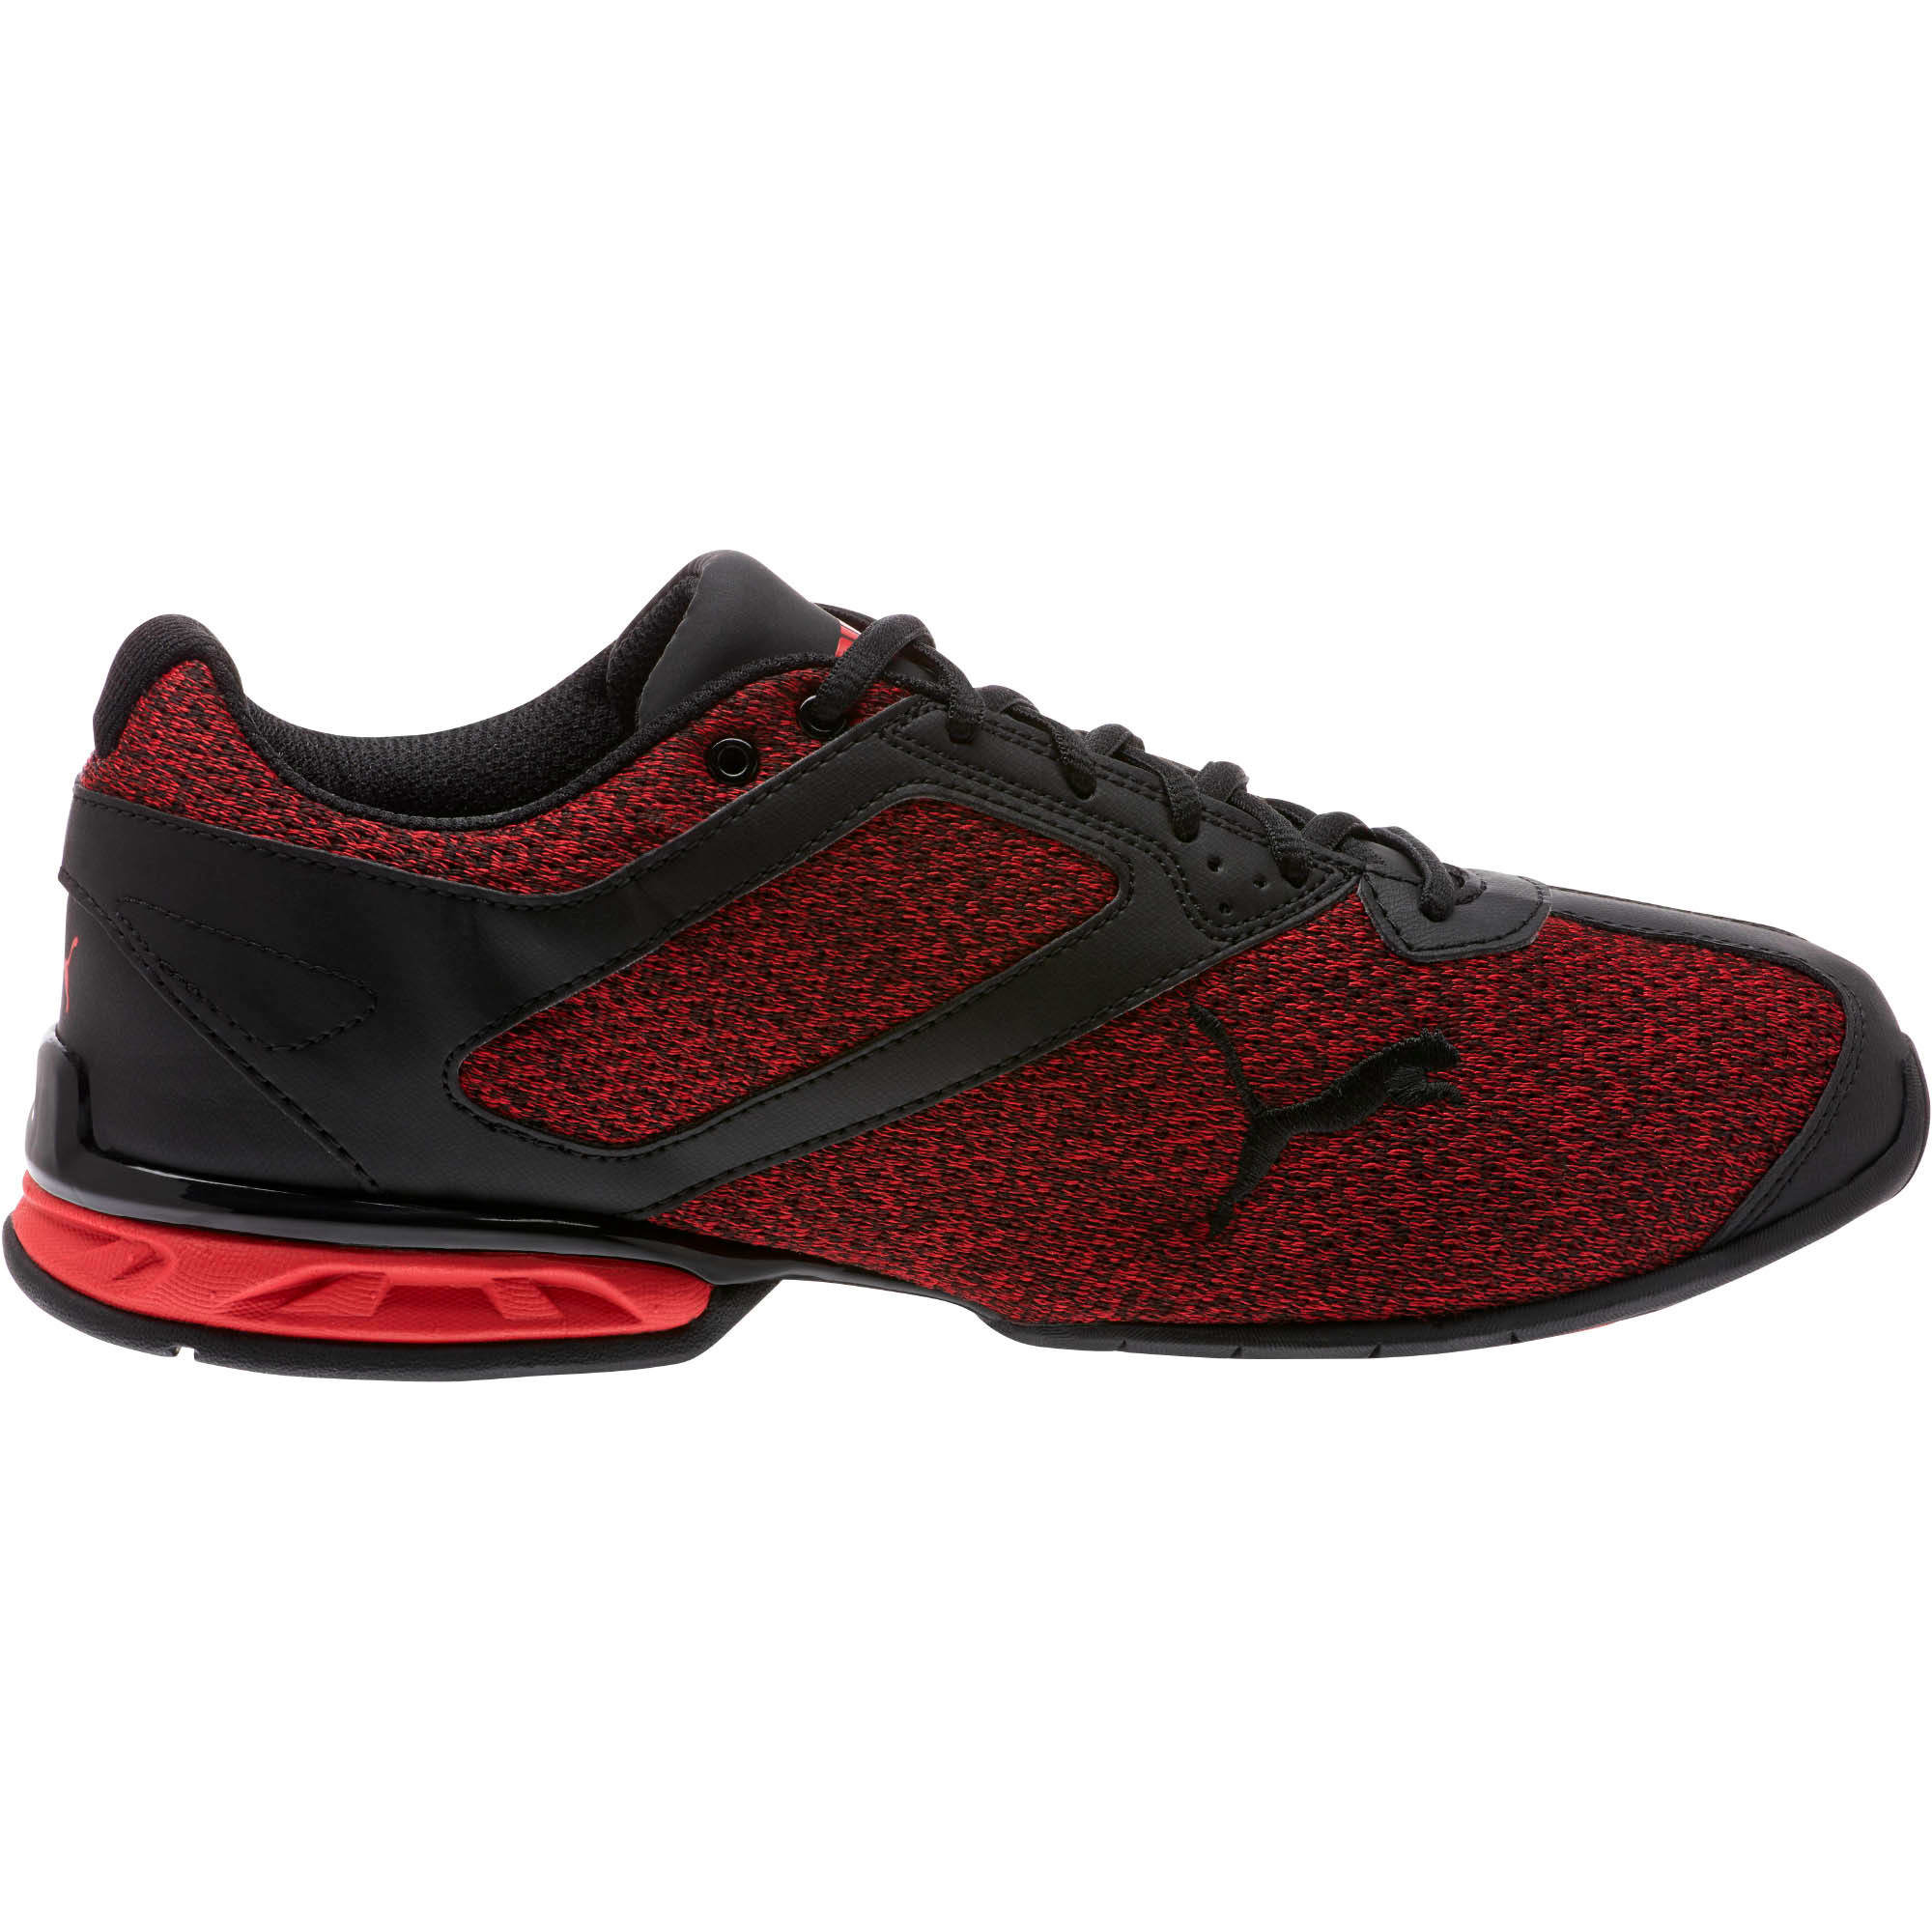 Thumbnail 3 of Tazon 6 Knit Men's Sneakers, Puma Black-Toreador, medium